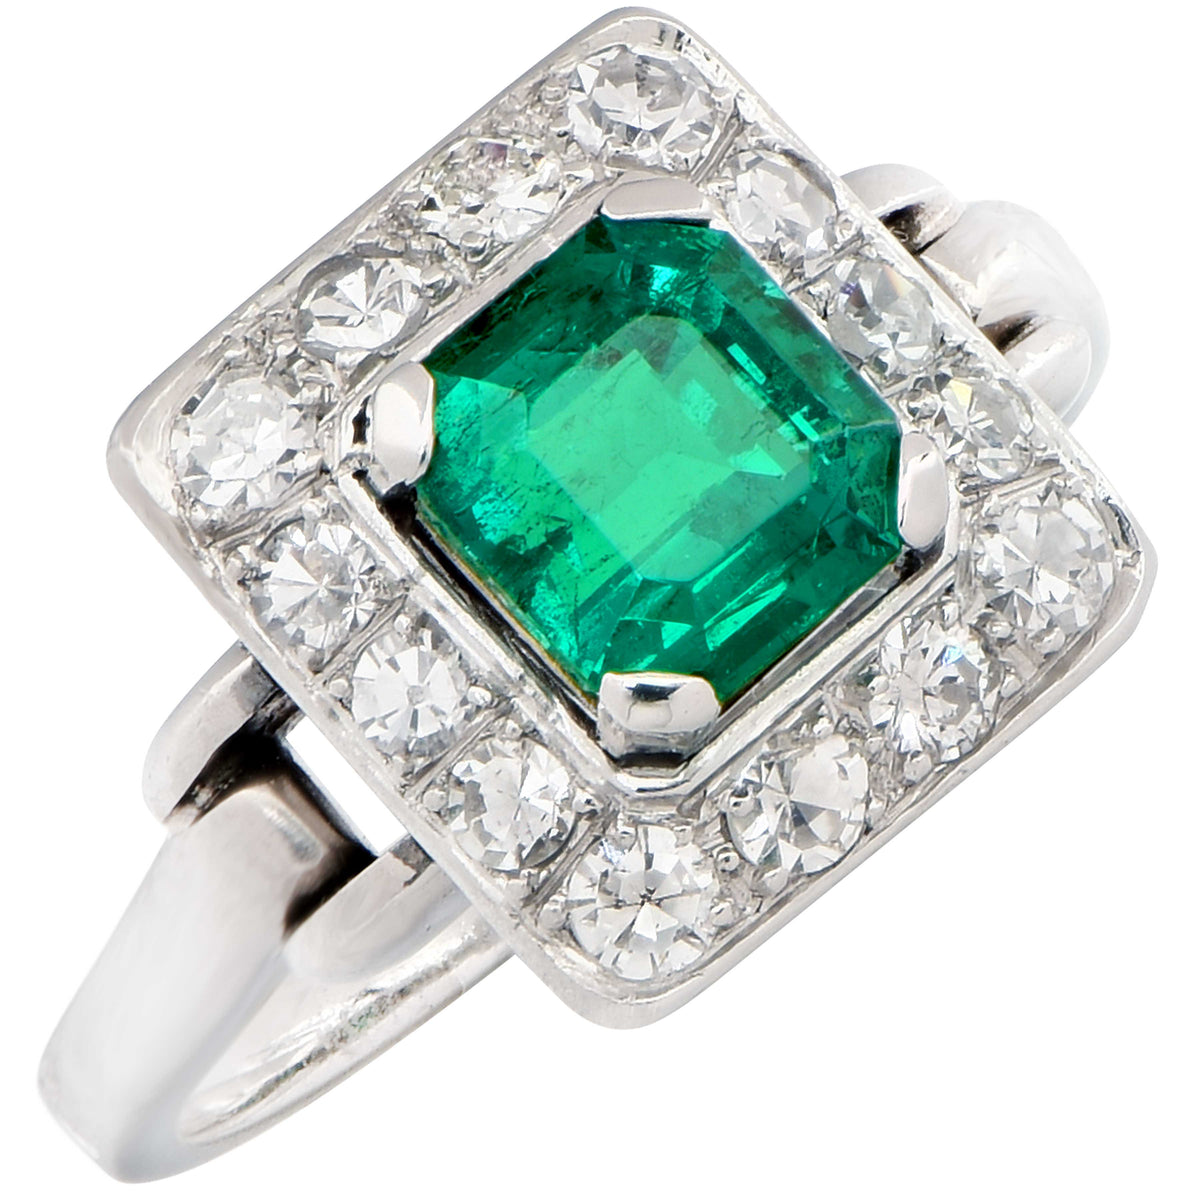 1.36 Carat AGL Colombian Emerald No Treatment Diamond Ring